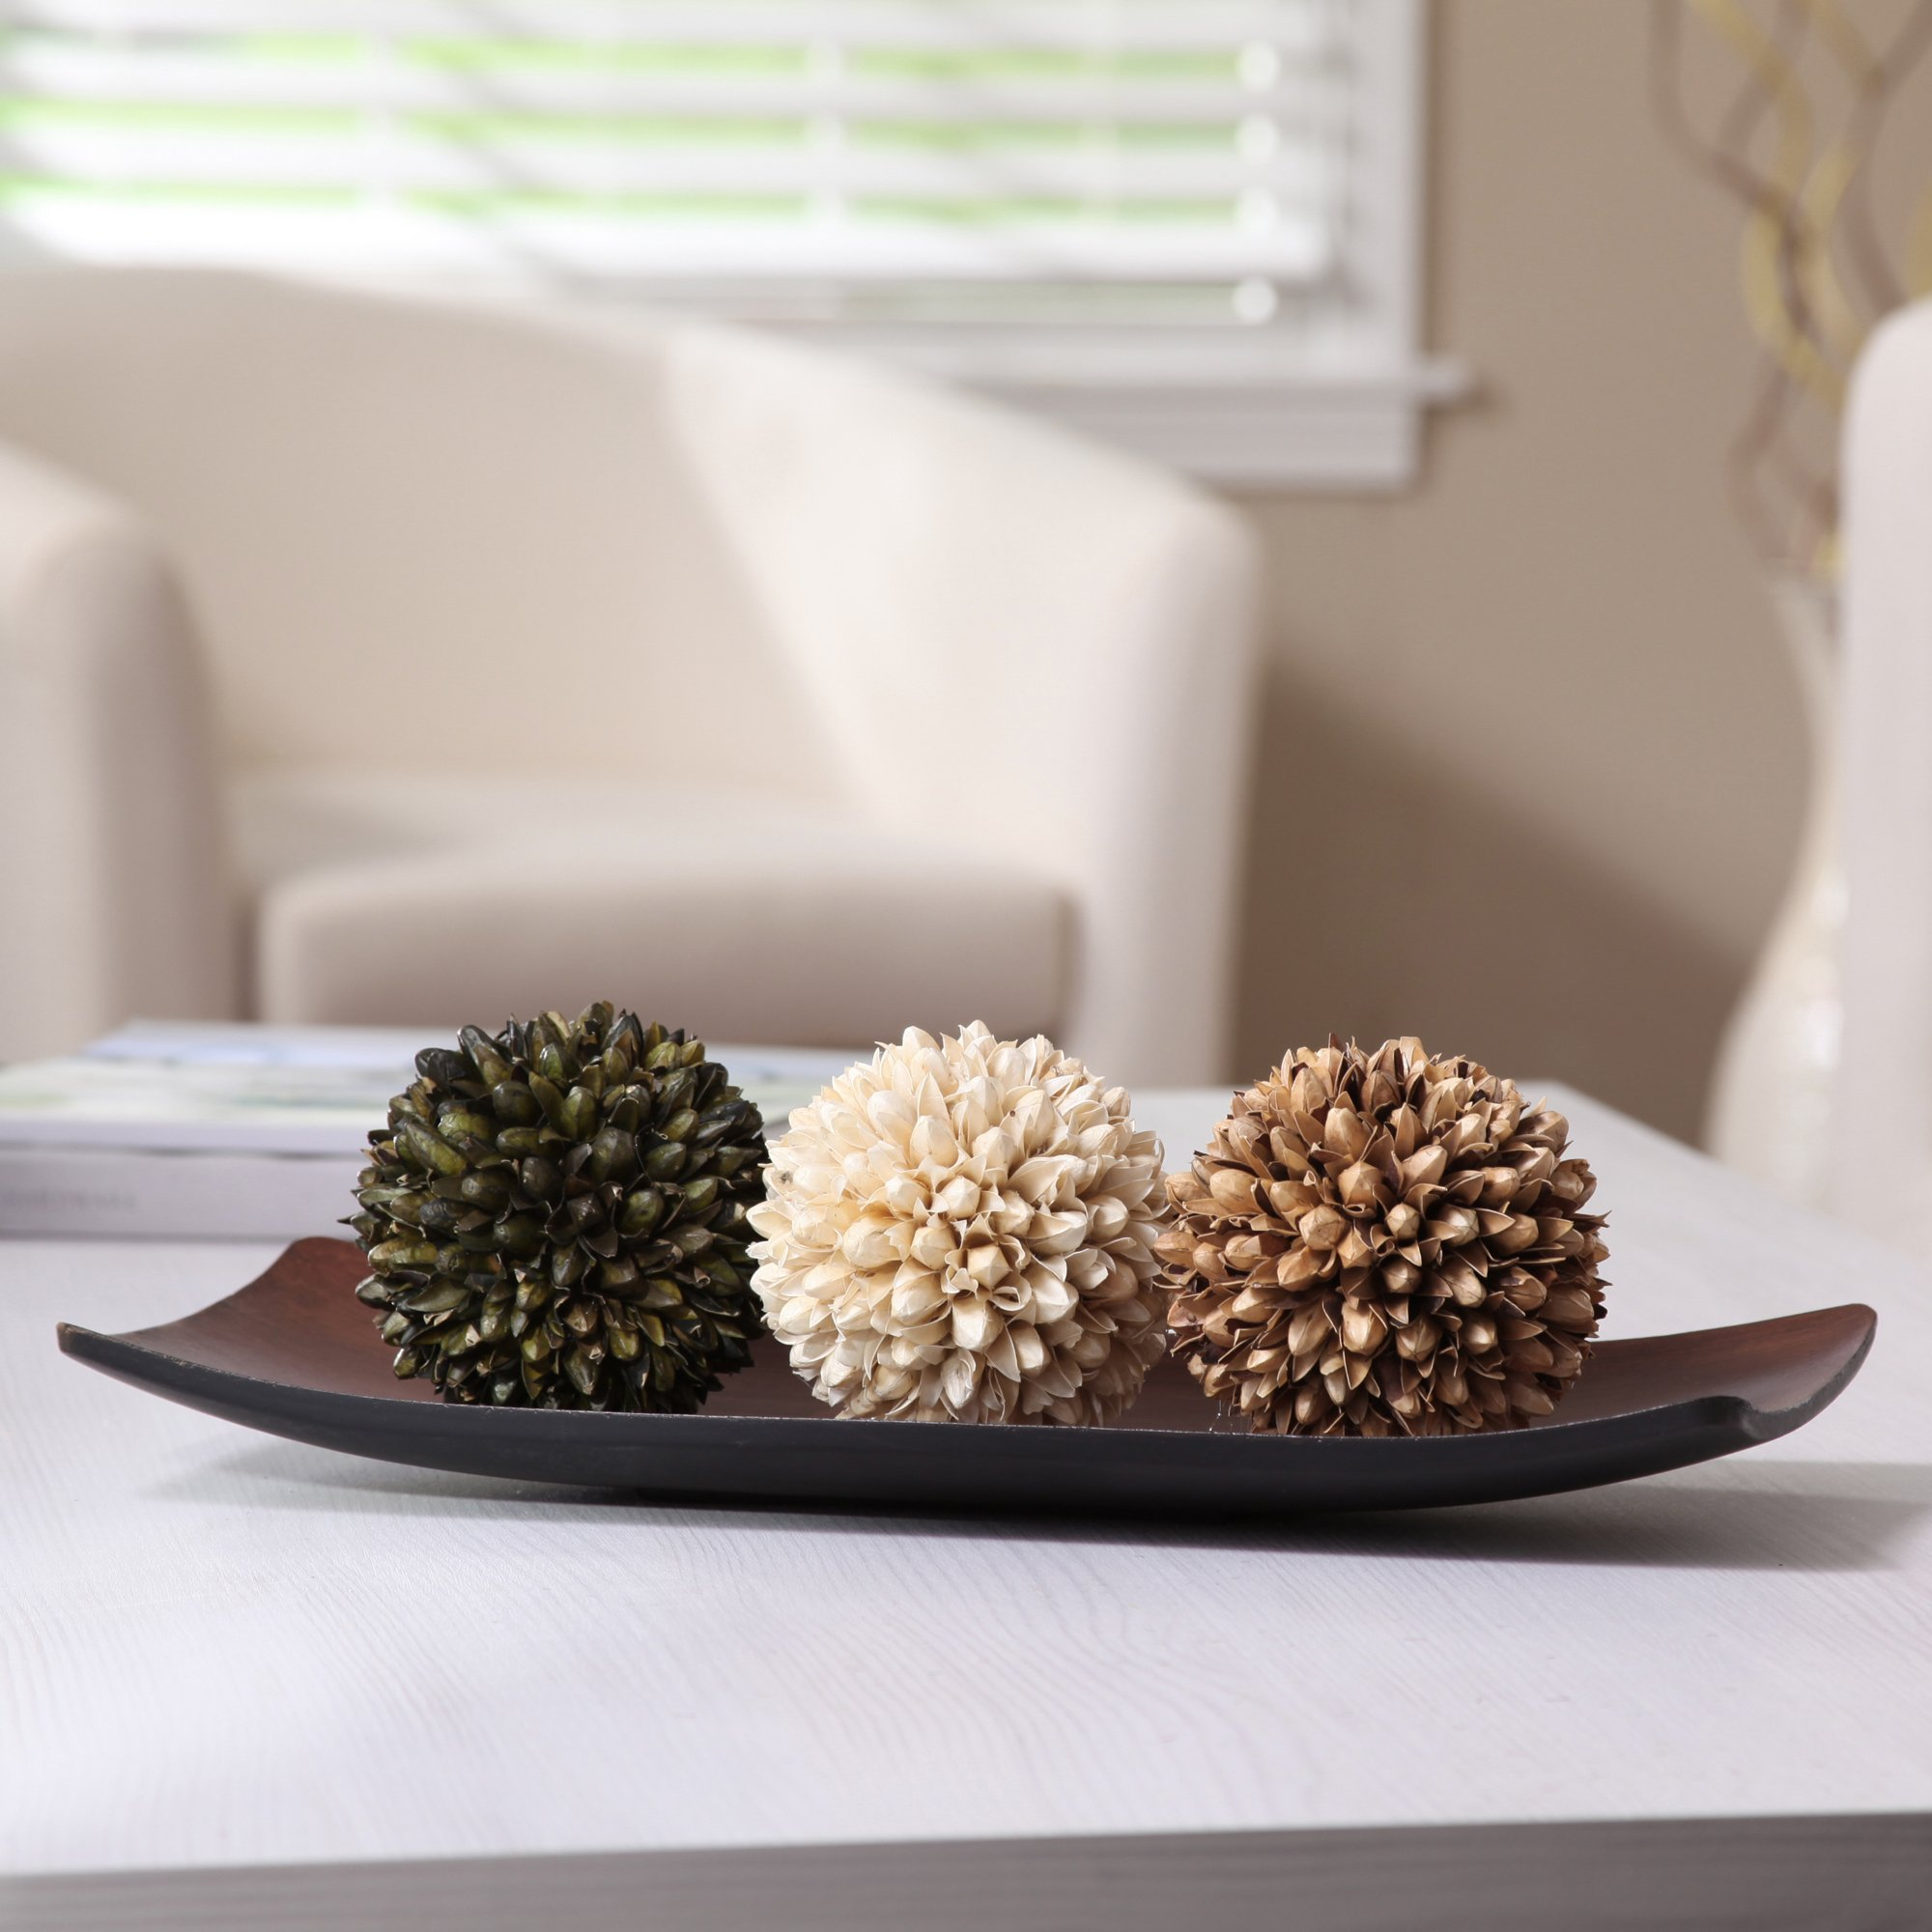 Hosley Decorative Bowl/Tray and Floral Orb/Ball Set. for Orbs, Dried Potpourri etc. Ideal Gift for Study, Den, Dorm, Home, Wedding, Spa, Reiki, Meditation O3